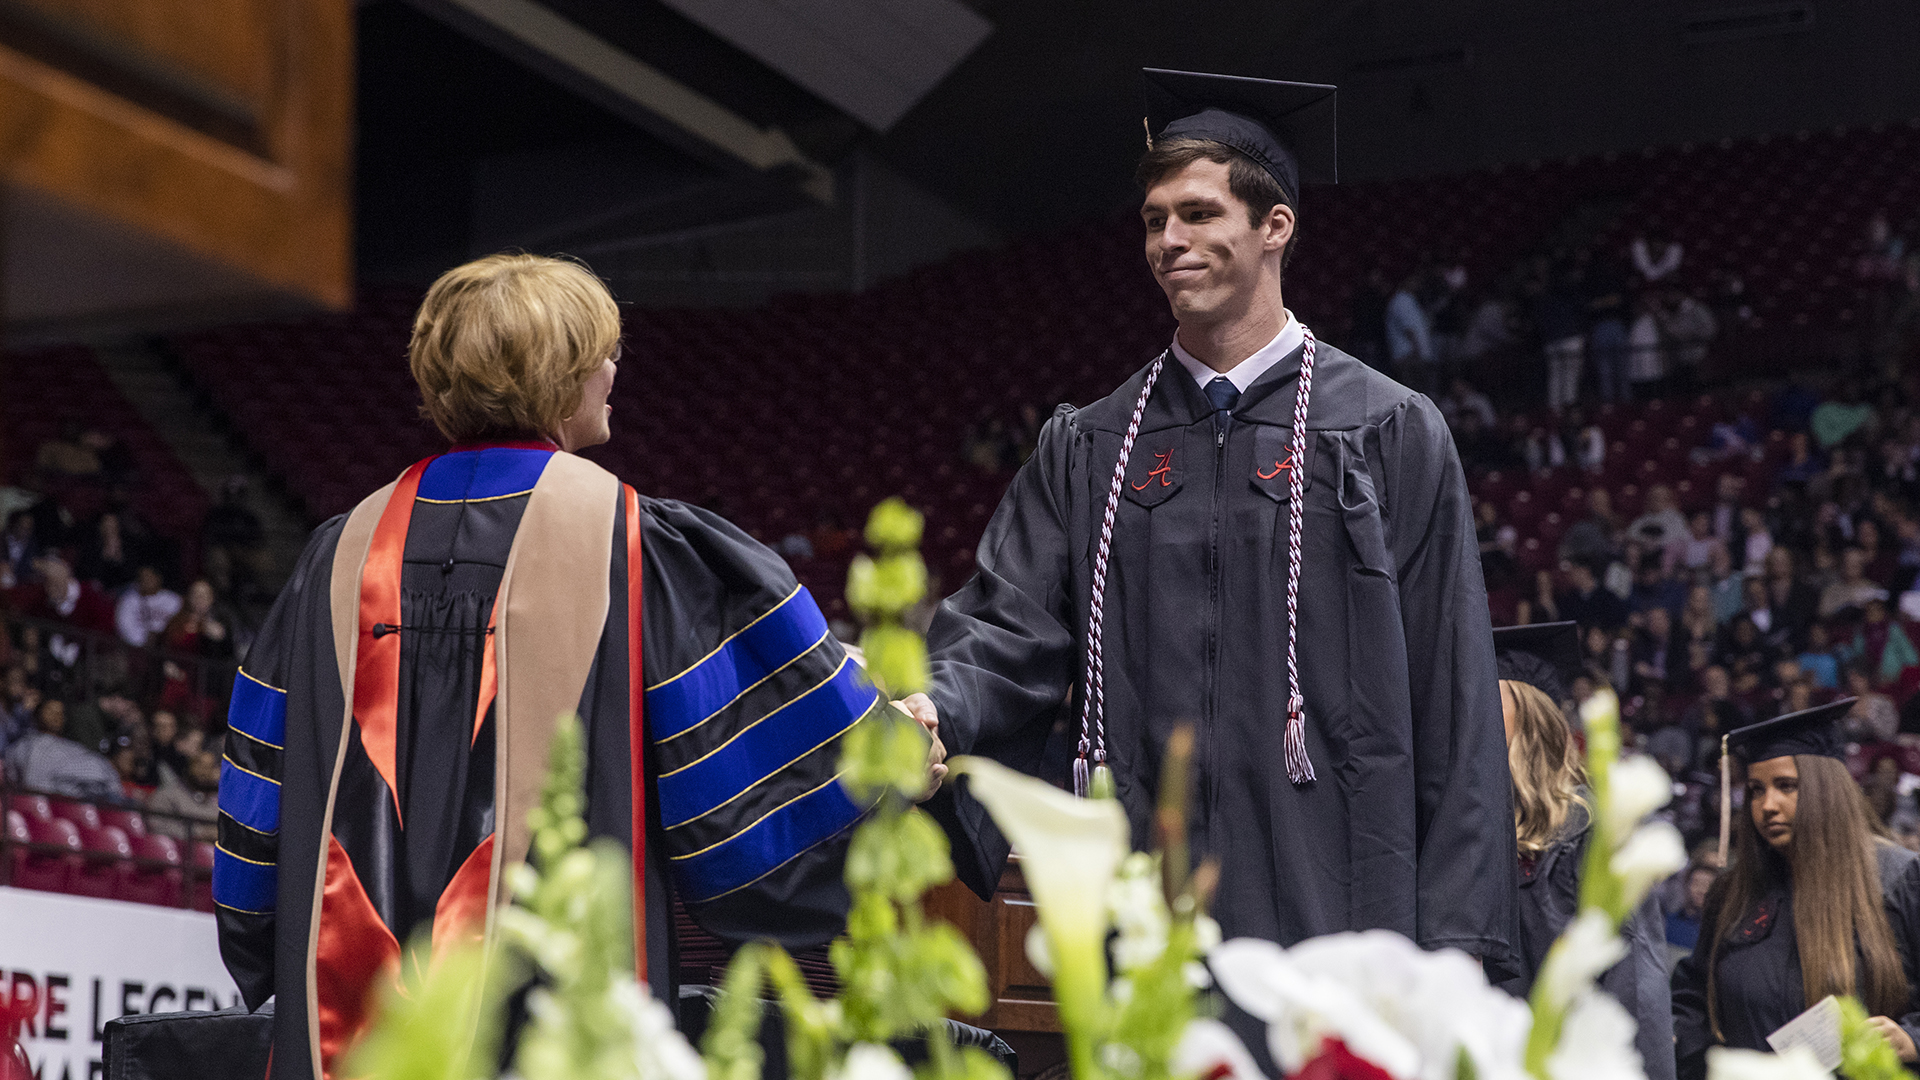 A graduate shakes a professor's hand as he crosses the stage.